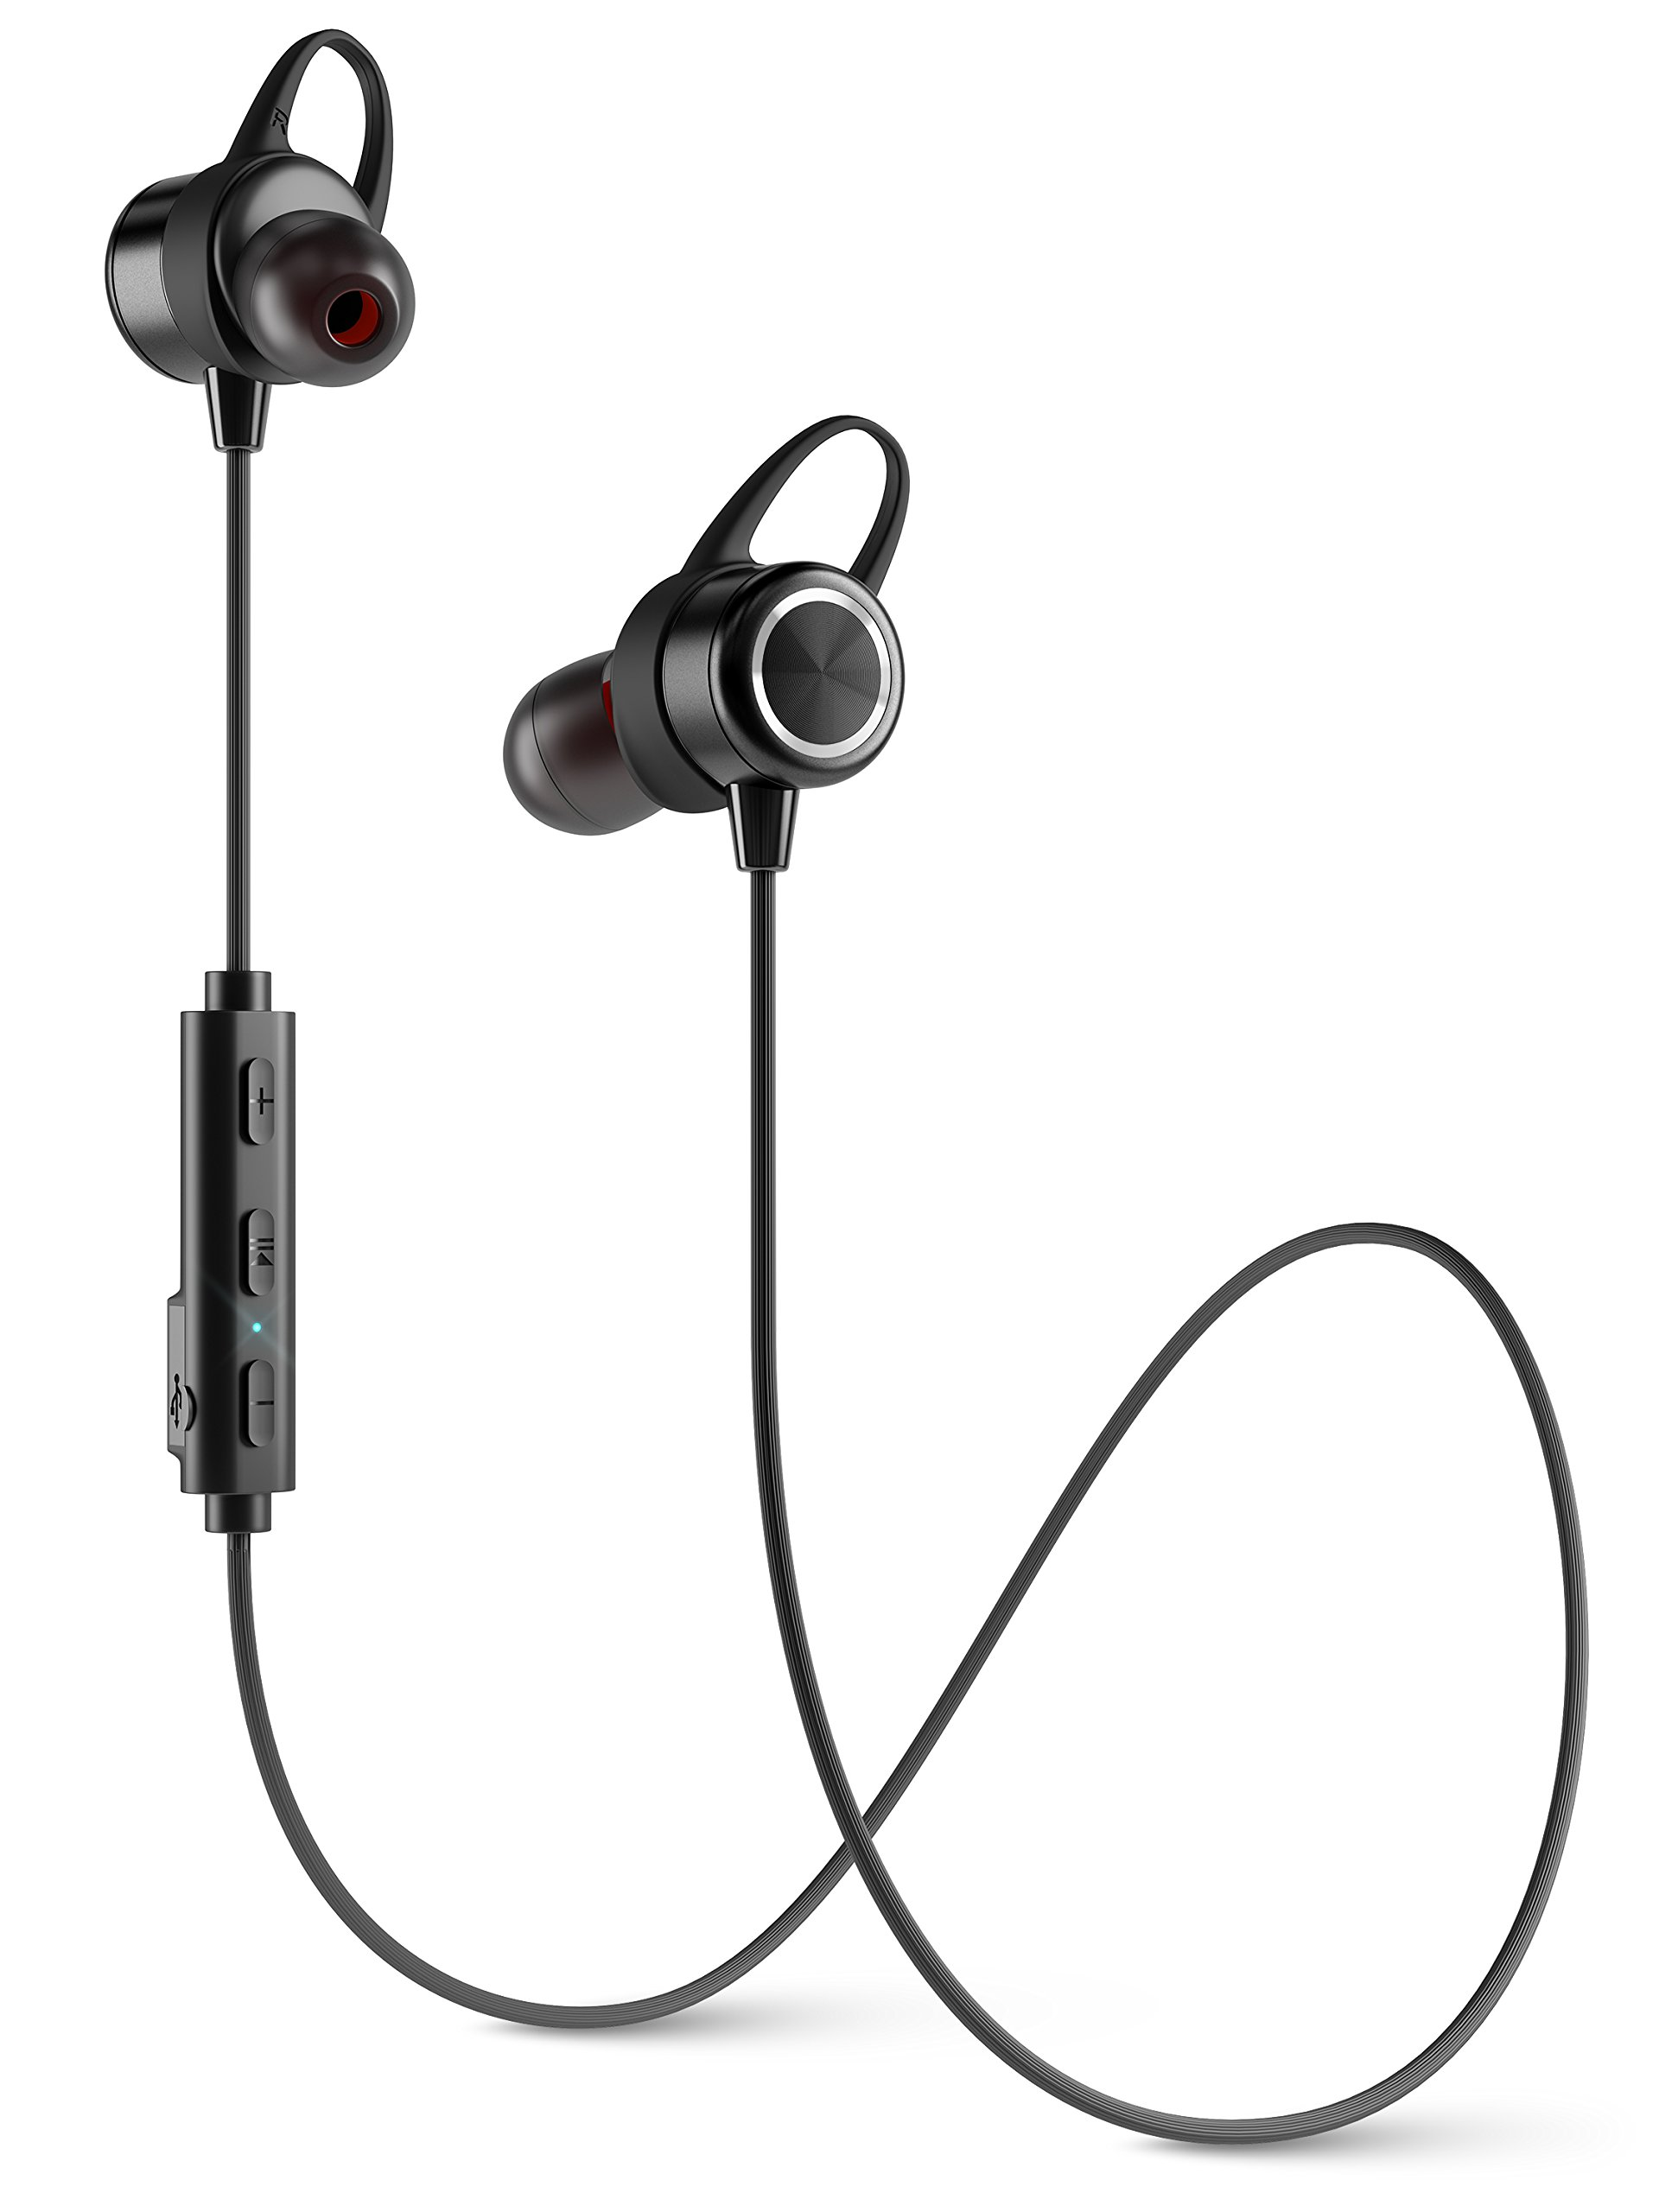 Diginex Bluetooth Earbuds Wireless Magnetic Headset Sport Earphones for Running IPX7 Waterproof Headphones 9 Hours Playtime High Fidelity Stereo Sound and Noise Cancelling Mic 1 Hour Recharge – Black by Diginex (Image #1)